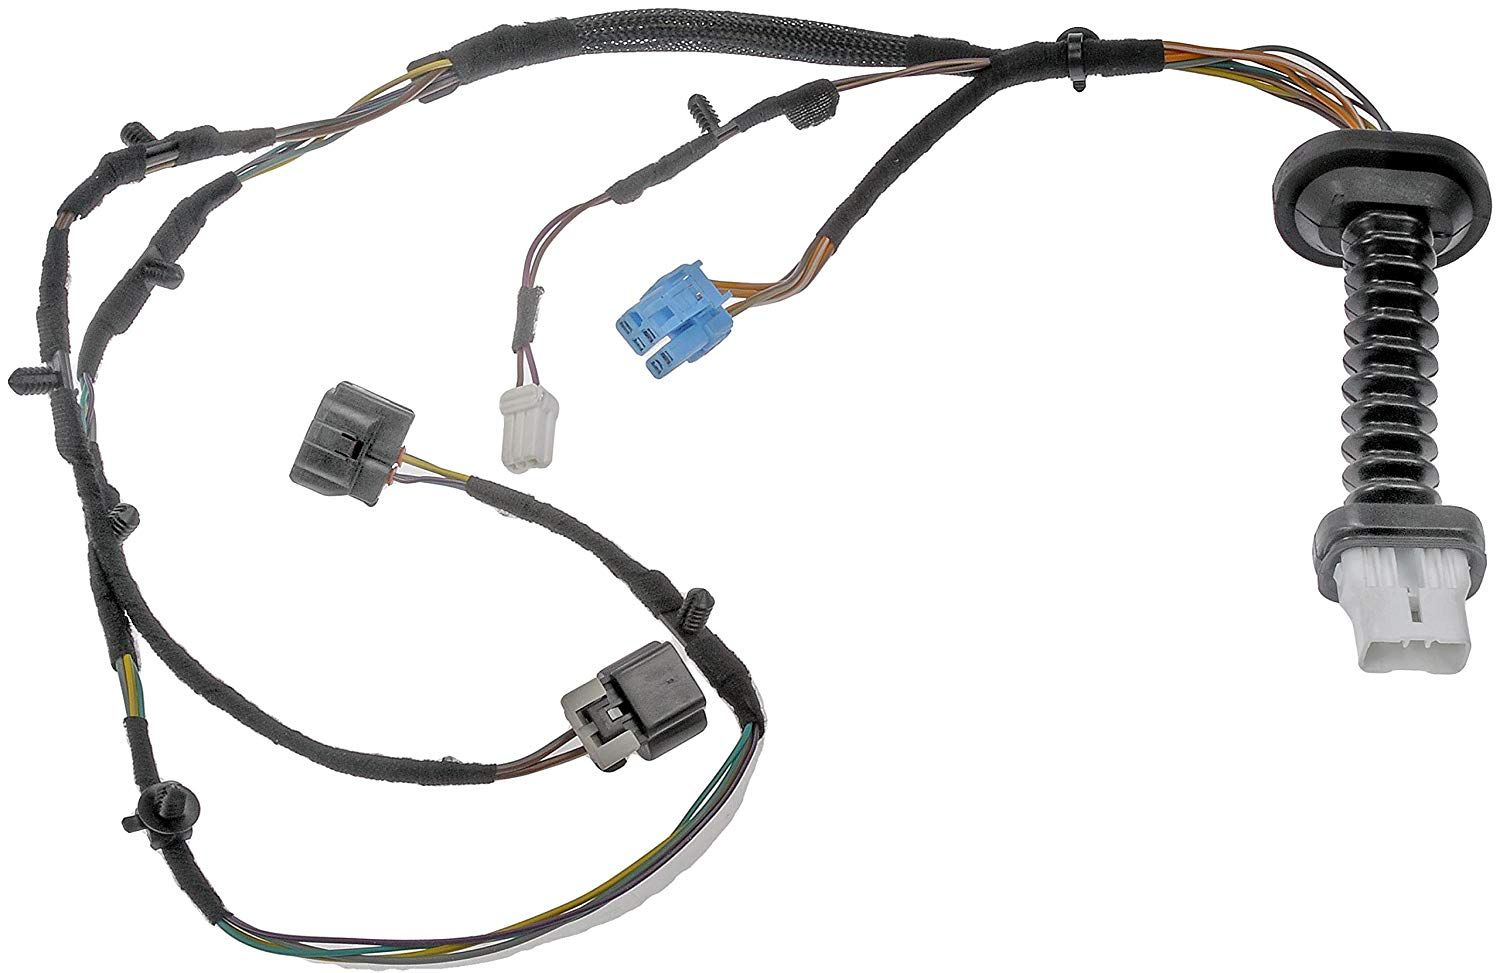 Dorman 645-506 Door Harness With Connectors